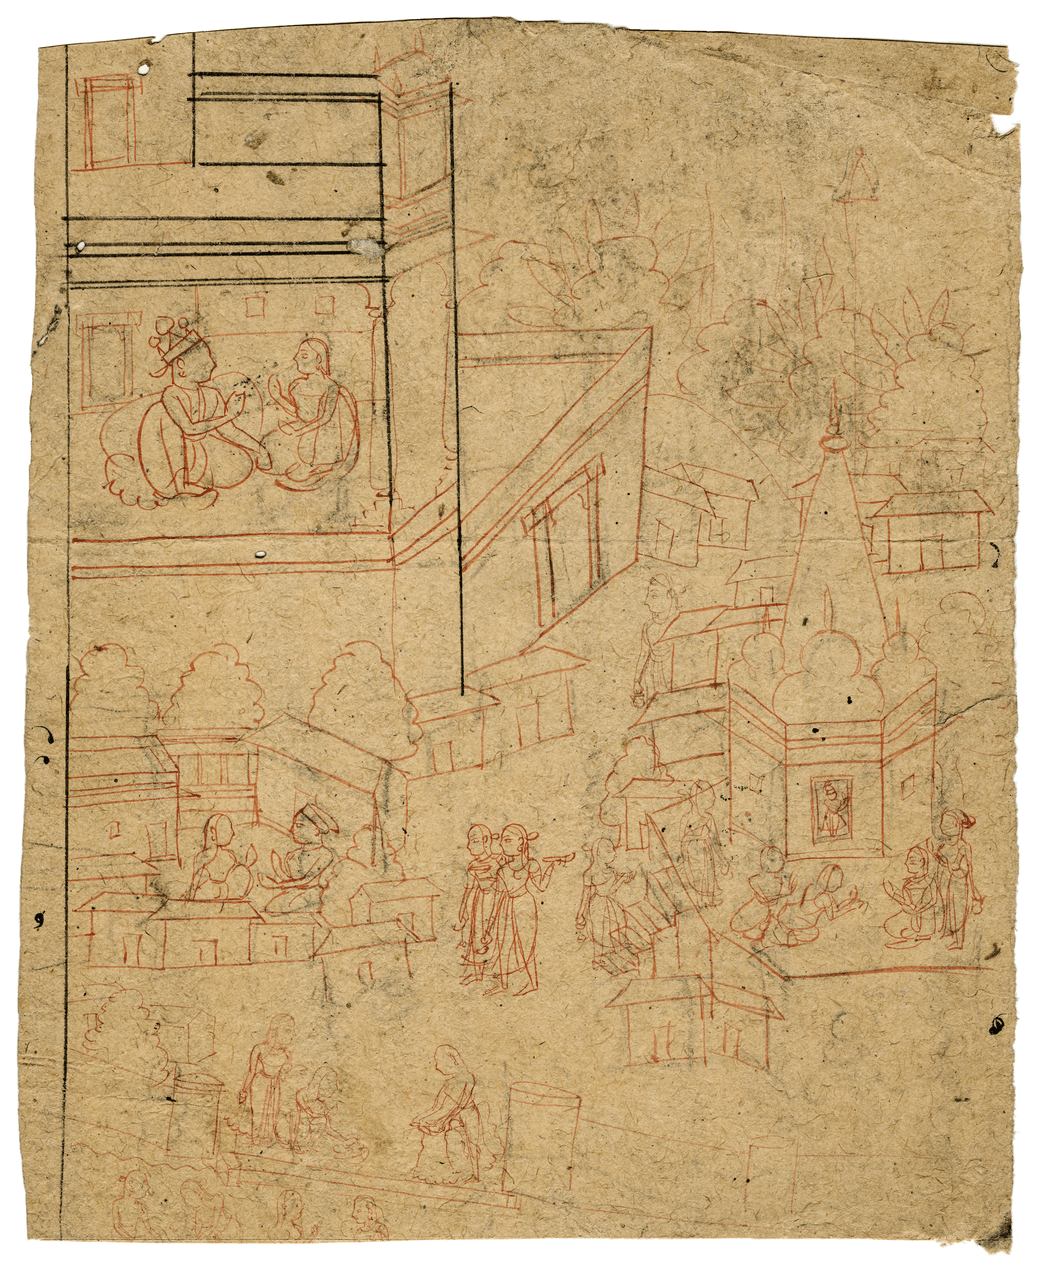 A 17th-18th Century Indian Ink Drawing Fragment